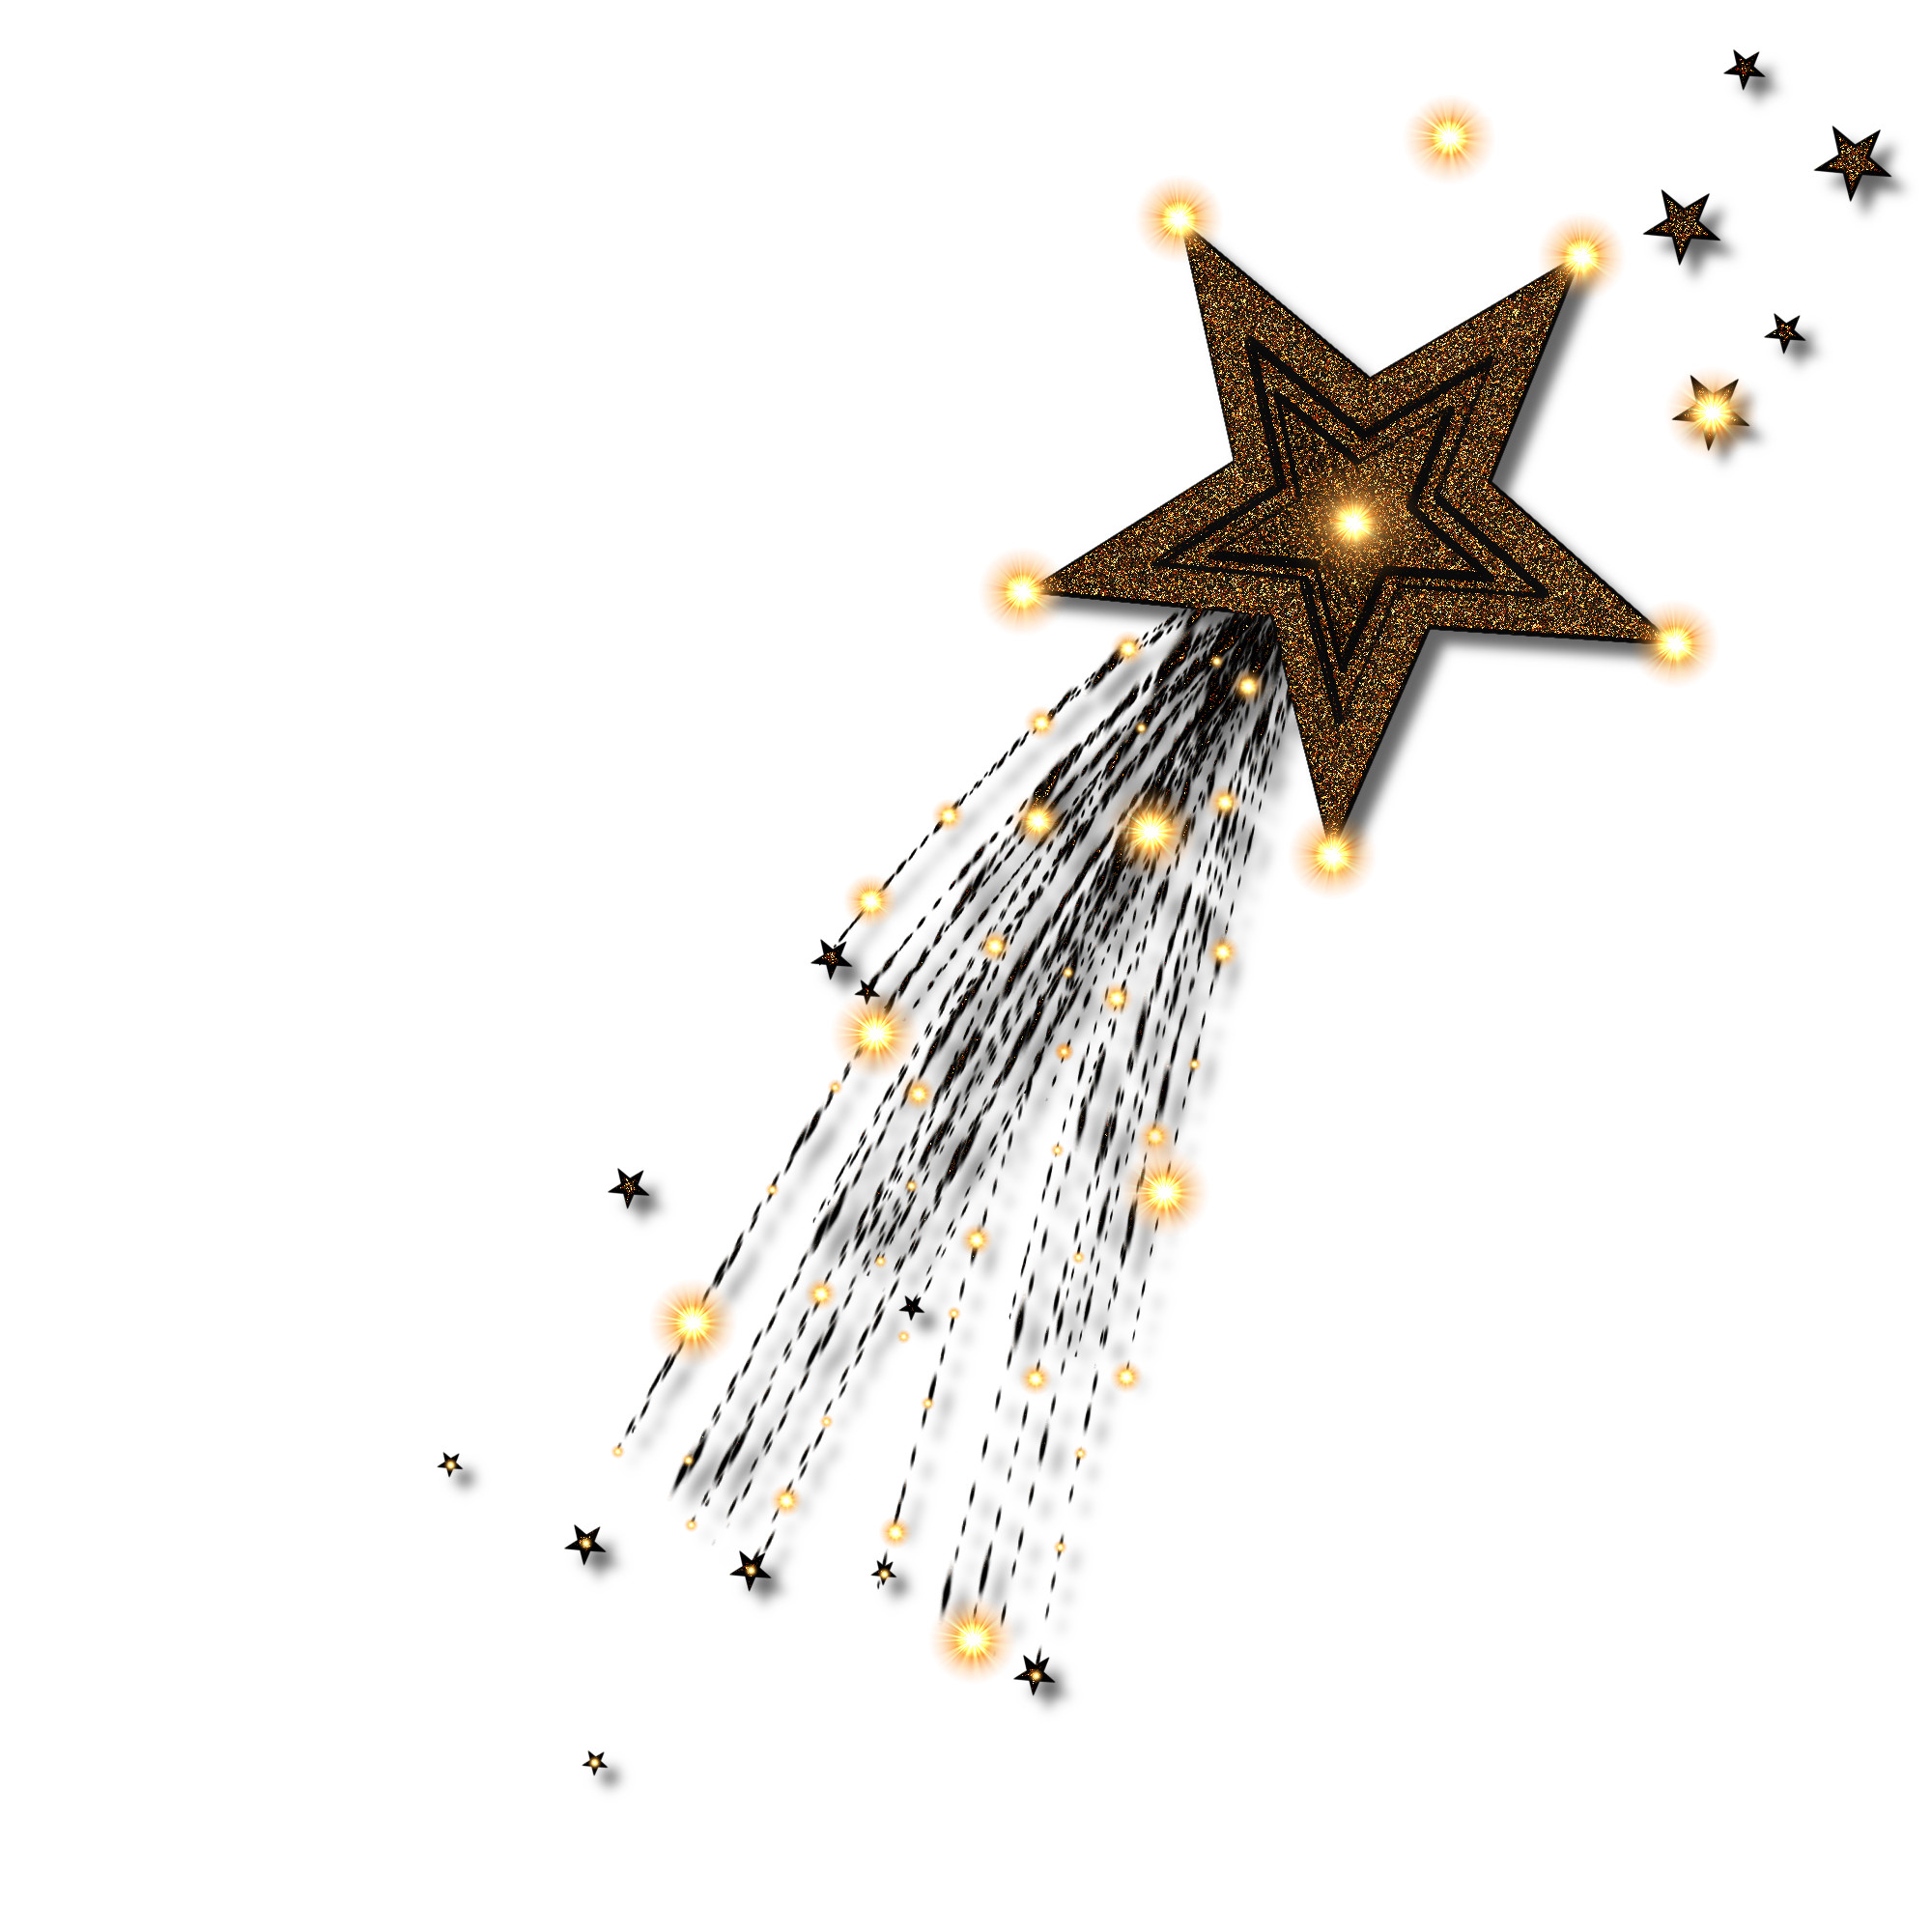 Clipart Picture Of Star Performers With No Background Collection Star Clipart Clip Art Star Art